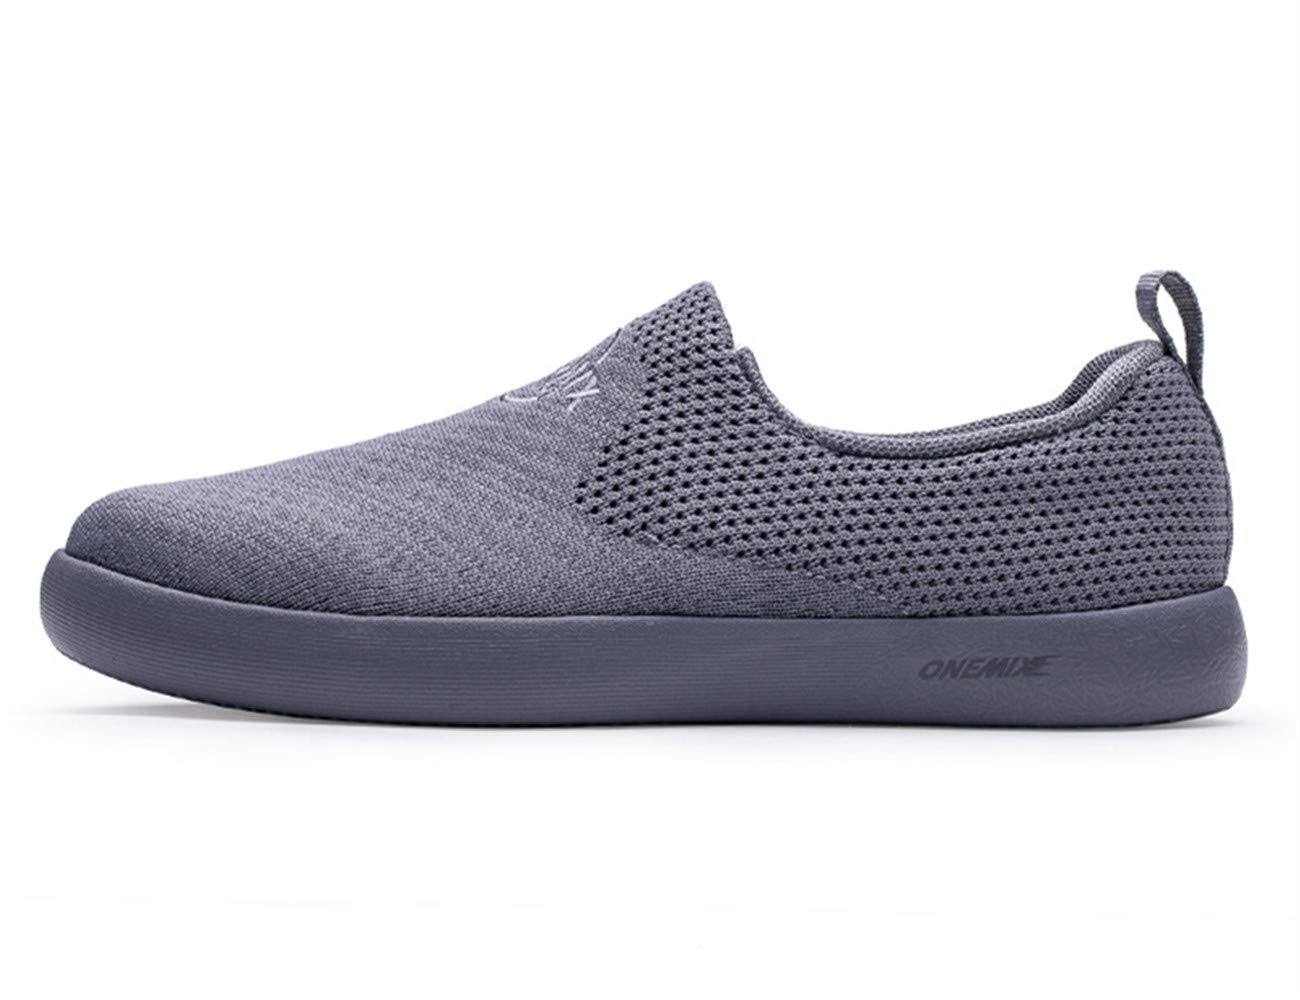 ONEMIX Men's Slip On Sneakers,Summer Breathable Lightweight No Tie Casual Walking Shoes,Grey,Size 11